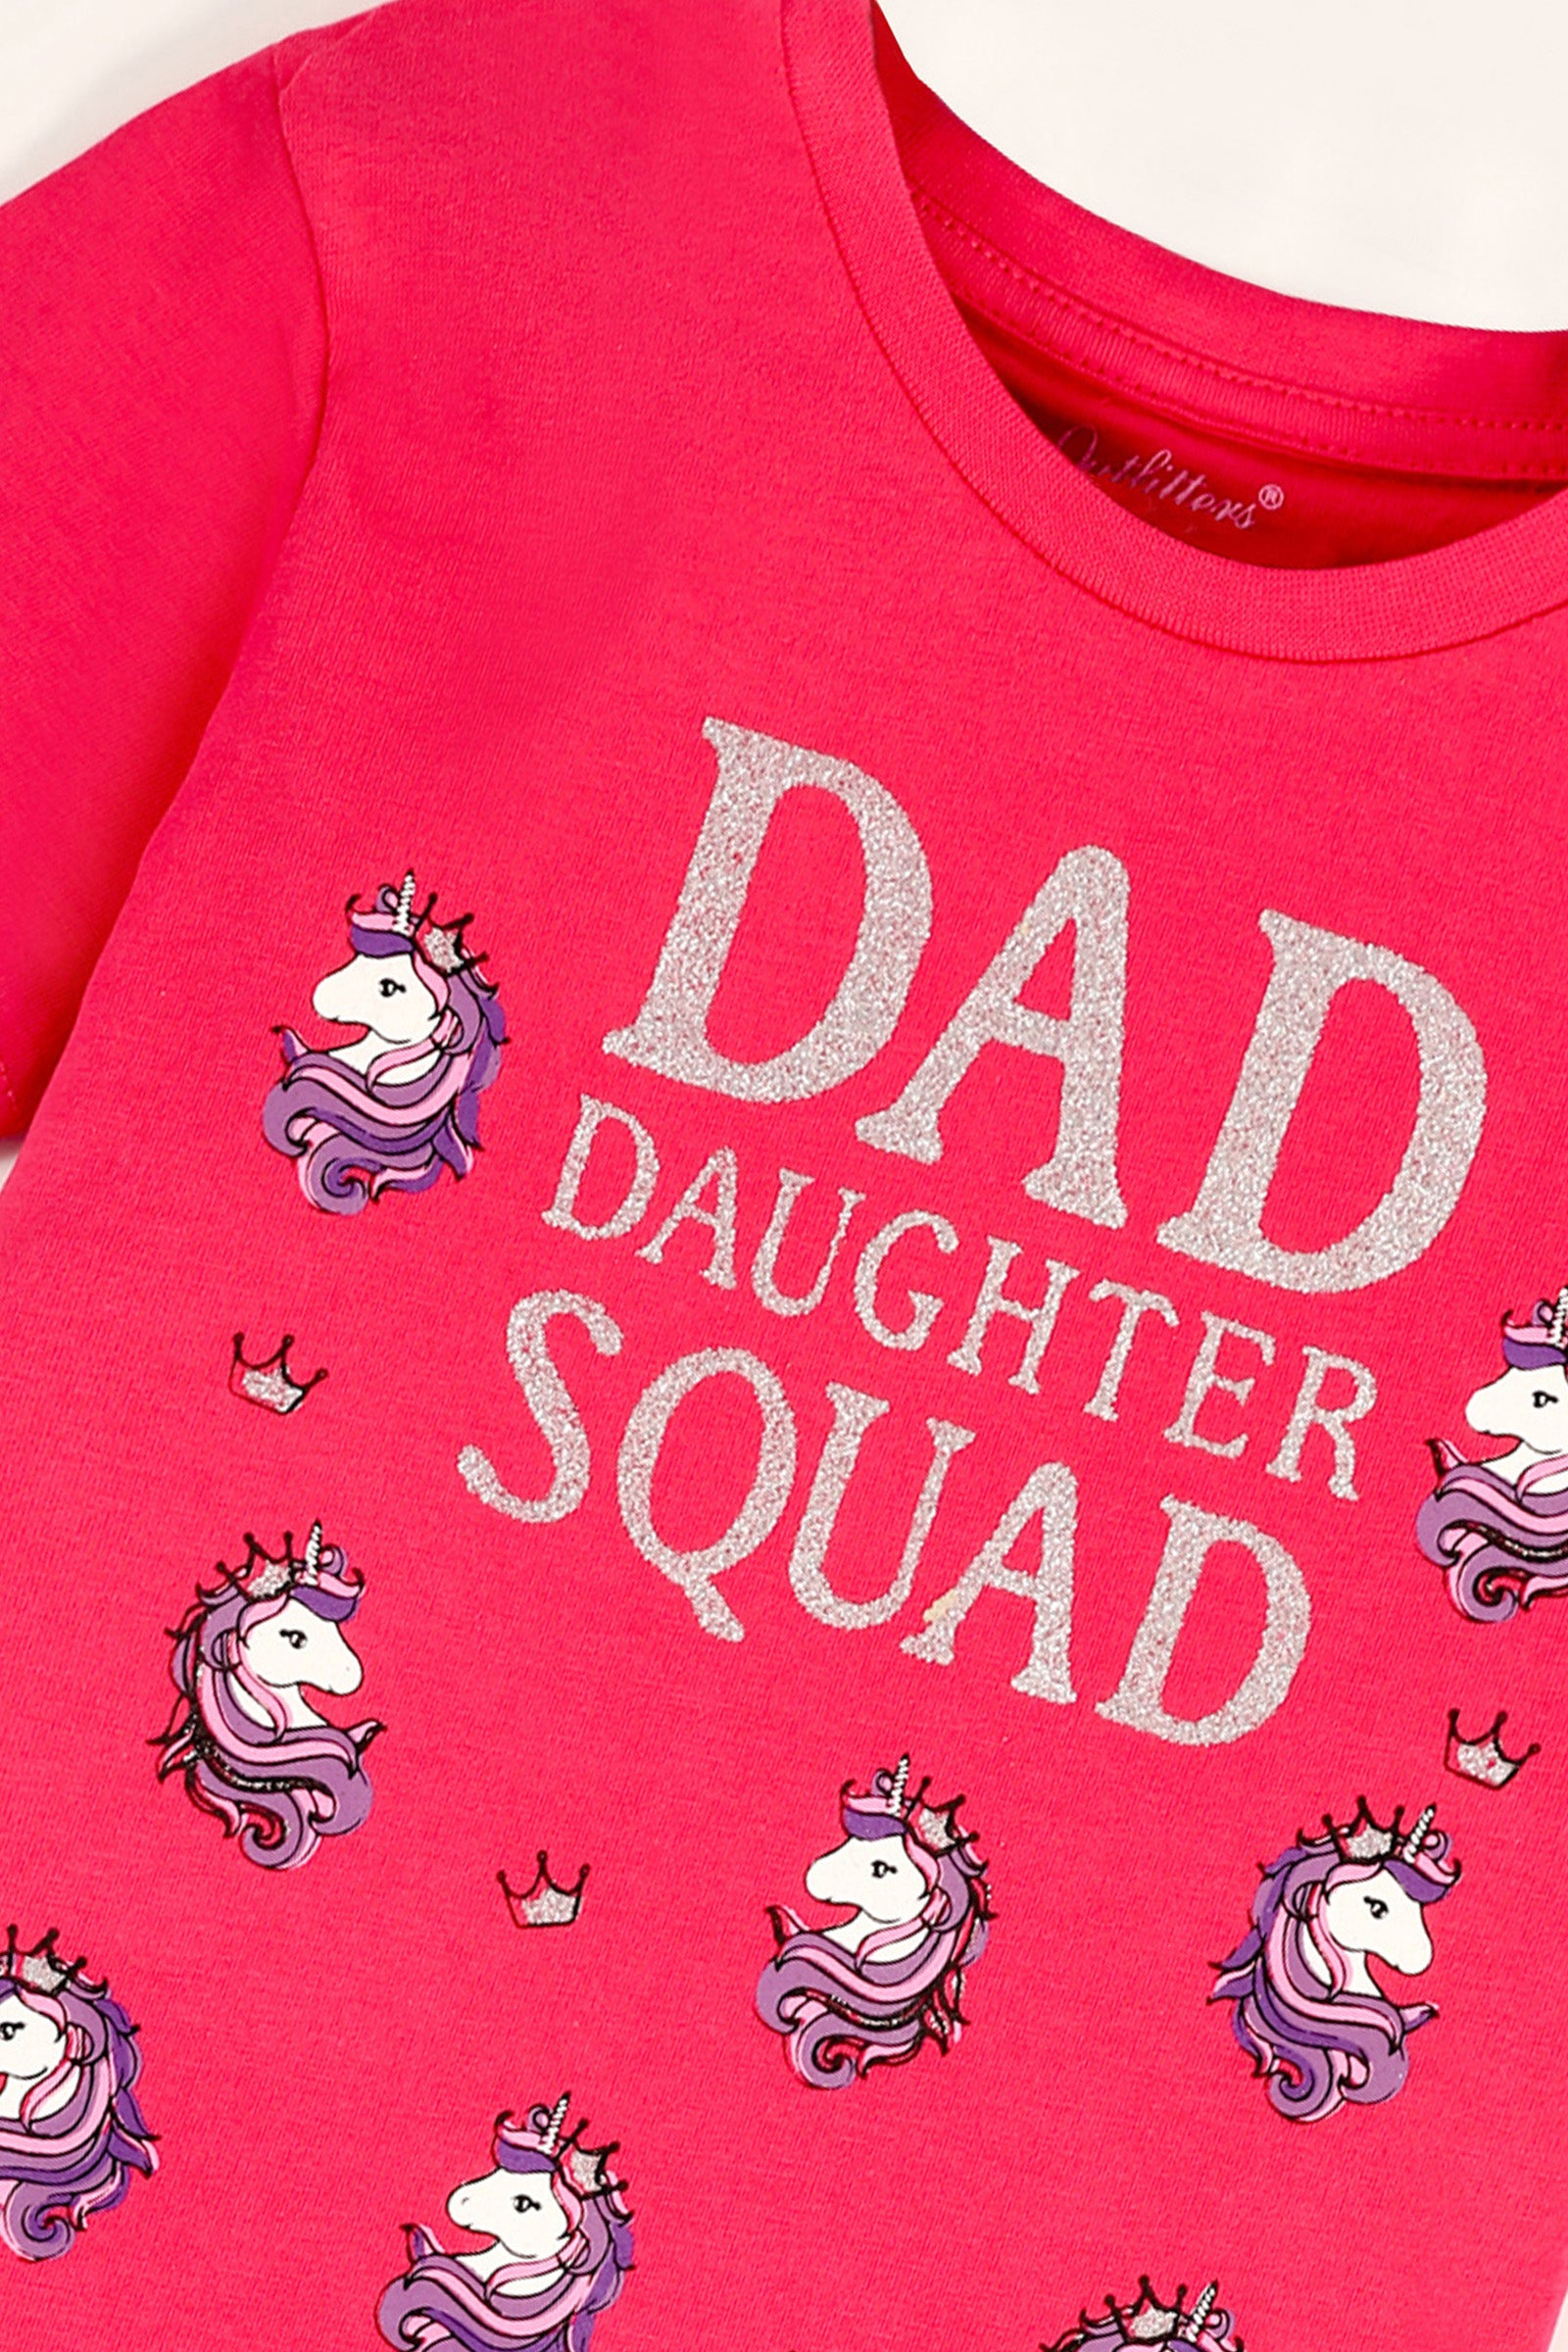 Dad Daughter Printed T-Shirt